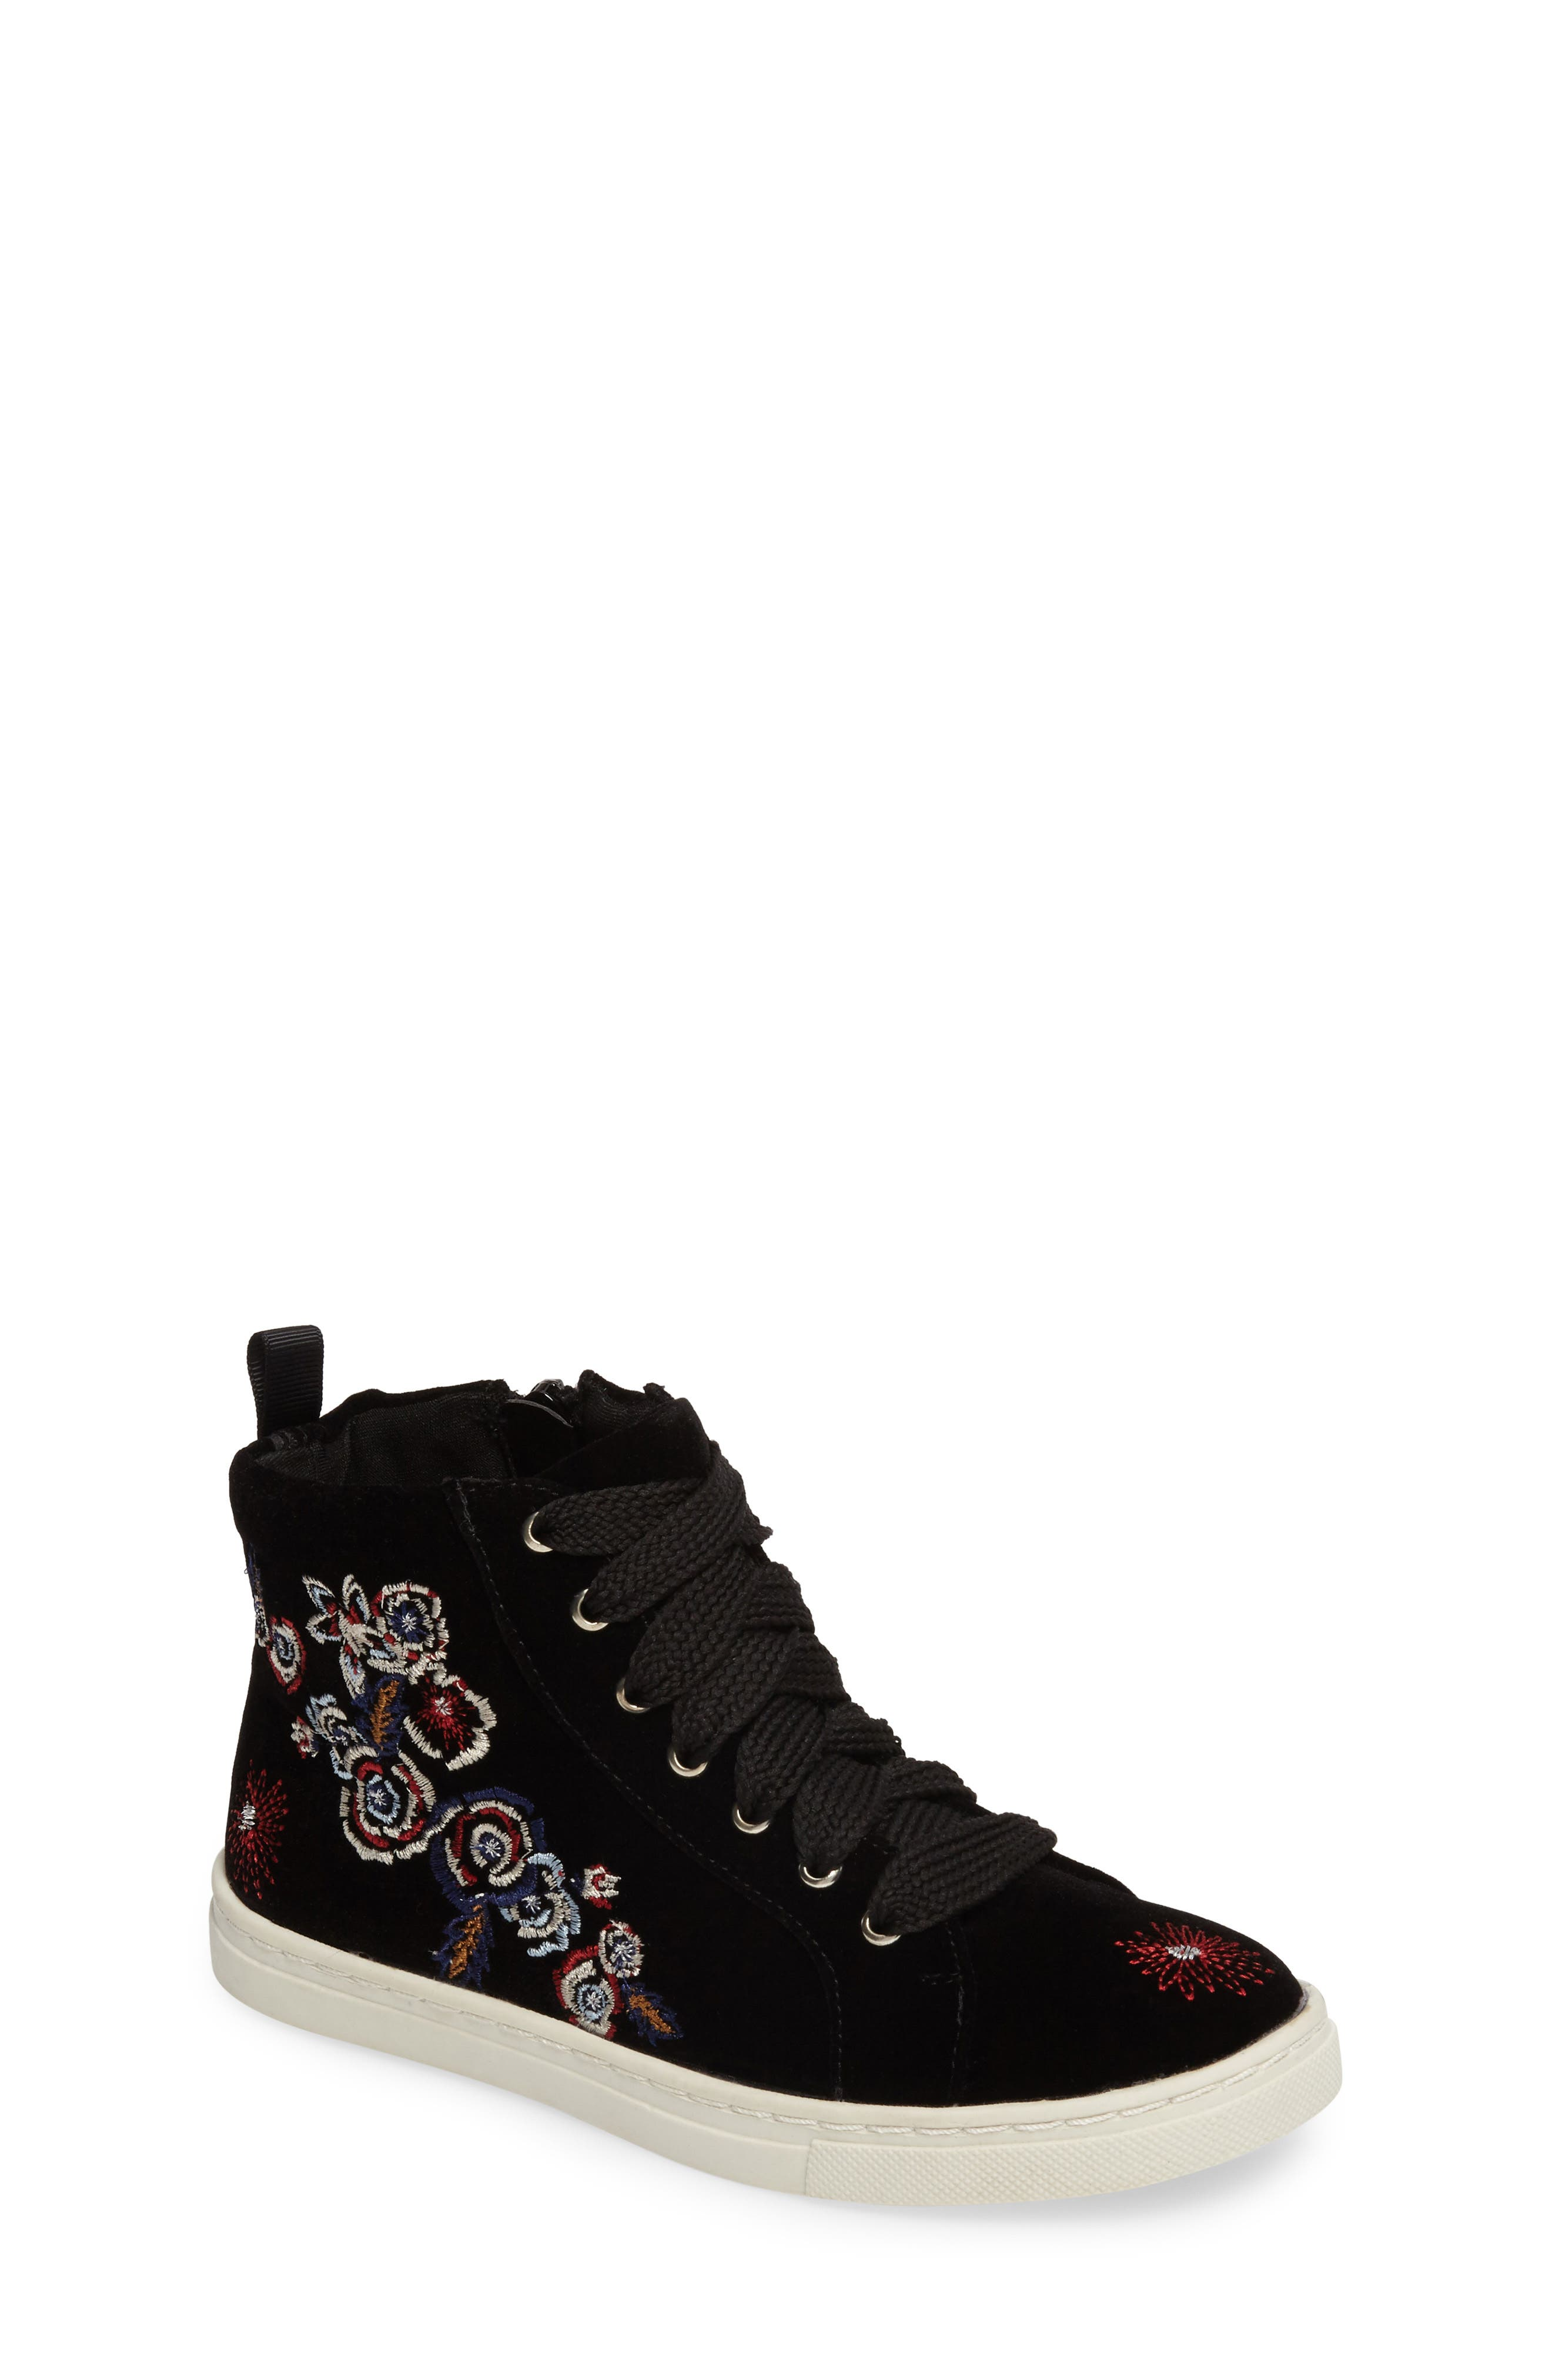 Dolce Vita Zowen Embroidered High Top Sneaker (Toddler, Little Kid & Big Kid)